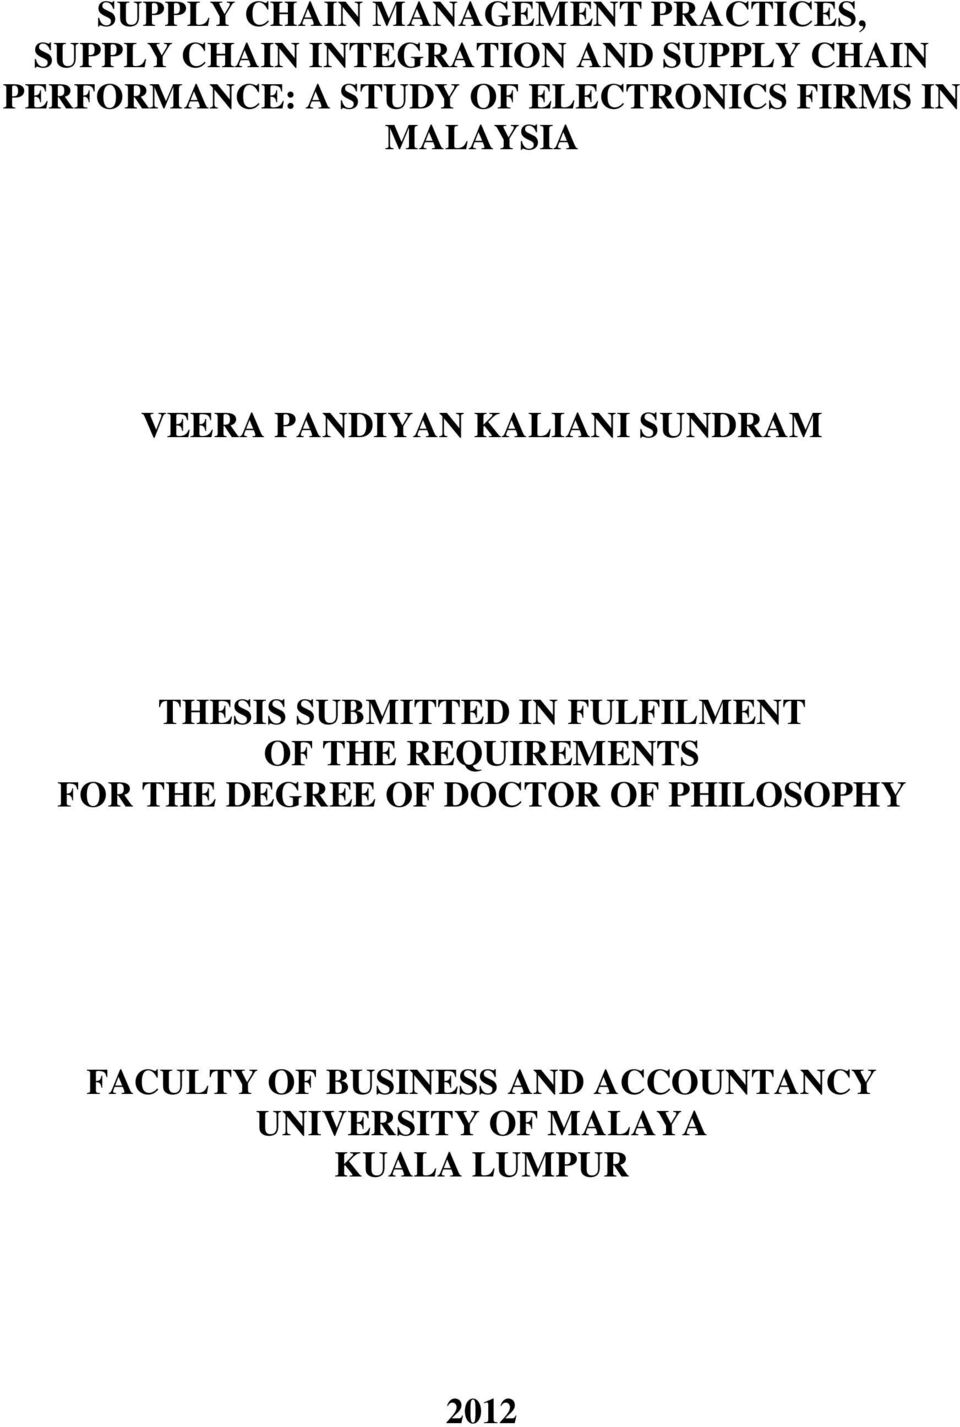 SUNDRAM THESIS SUBMITTED IN FULFILMENT OF THE REQUIREMENTS FOR THE DEGREE OF